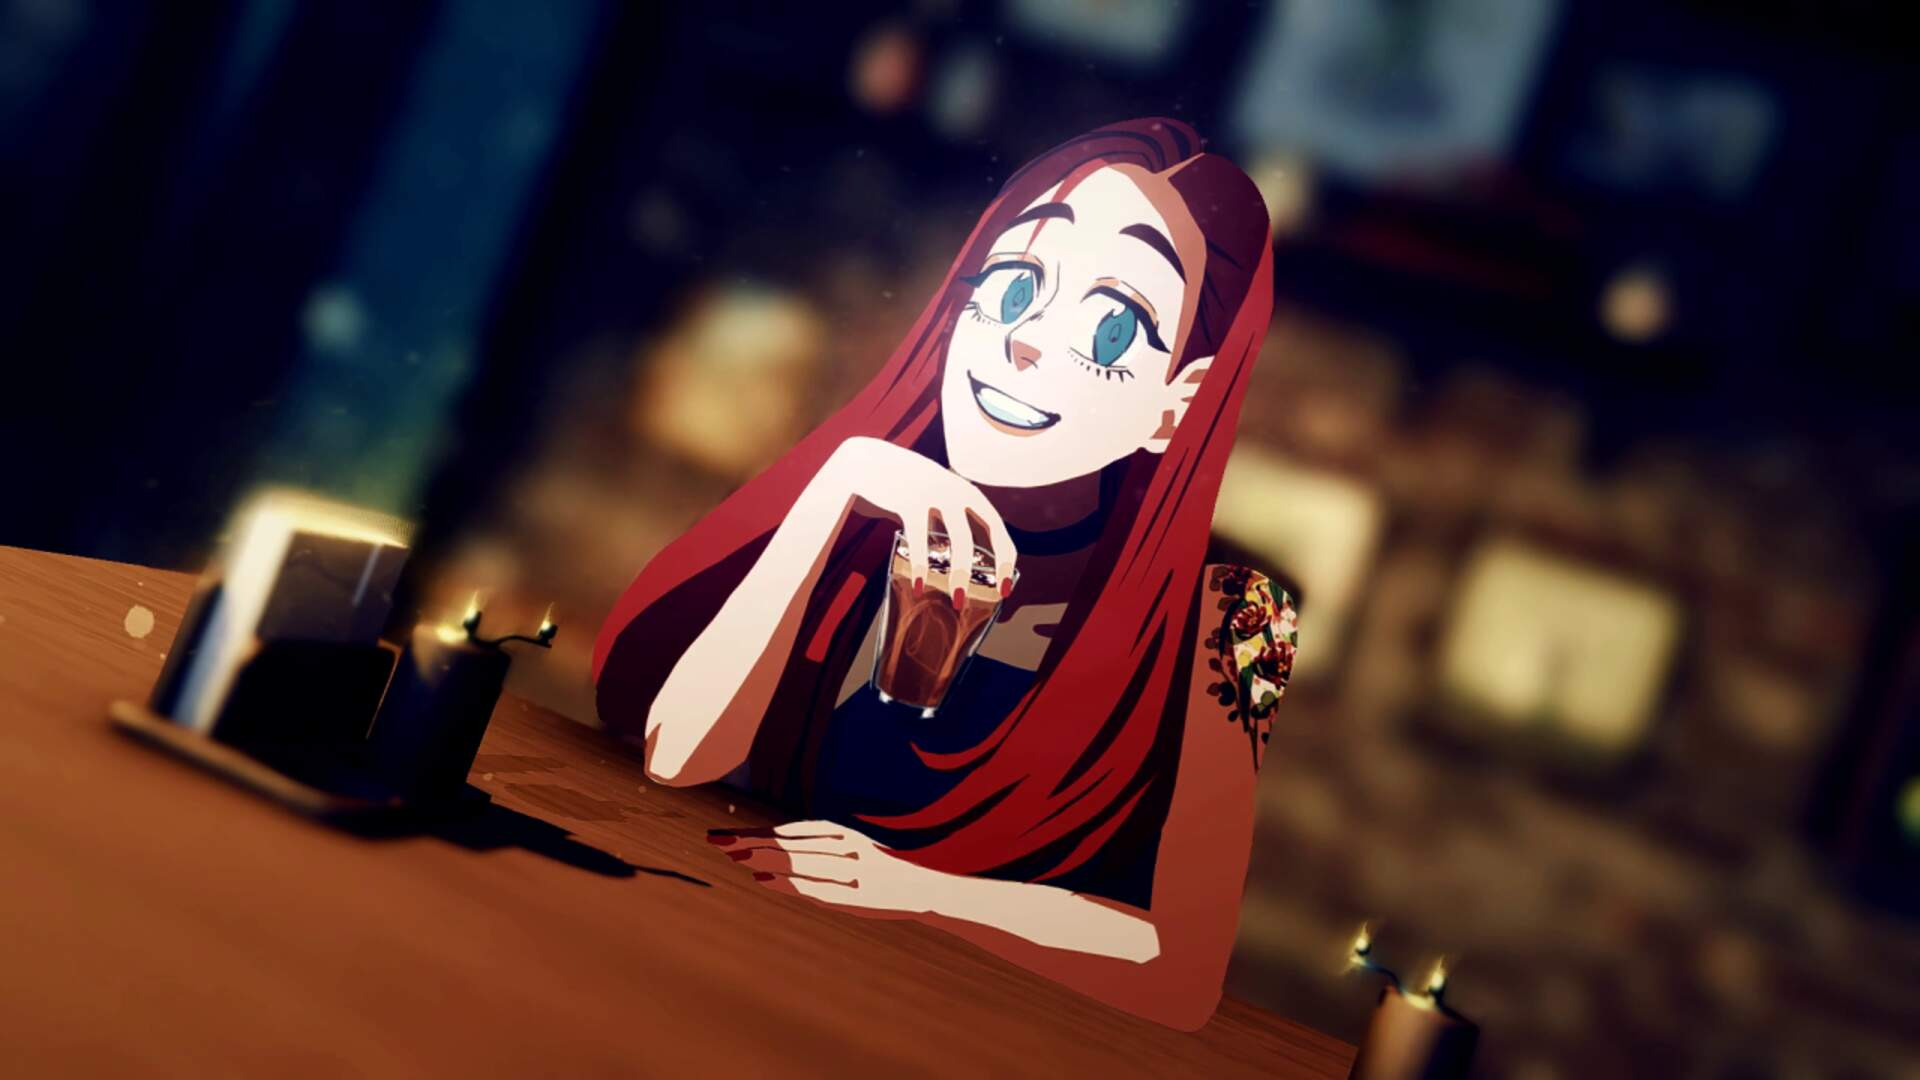 Necrobarista is an Introspective Game About a Supernatural Coffee Shop Coming to PC This August